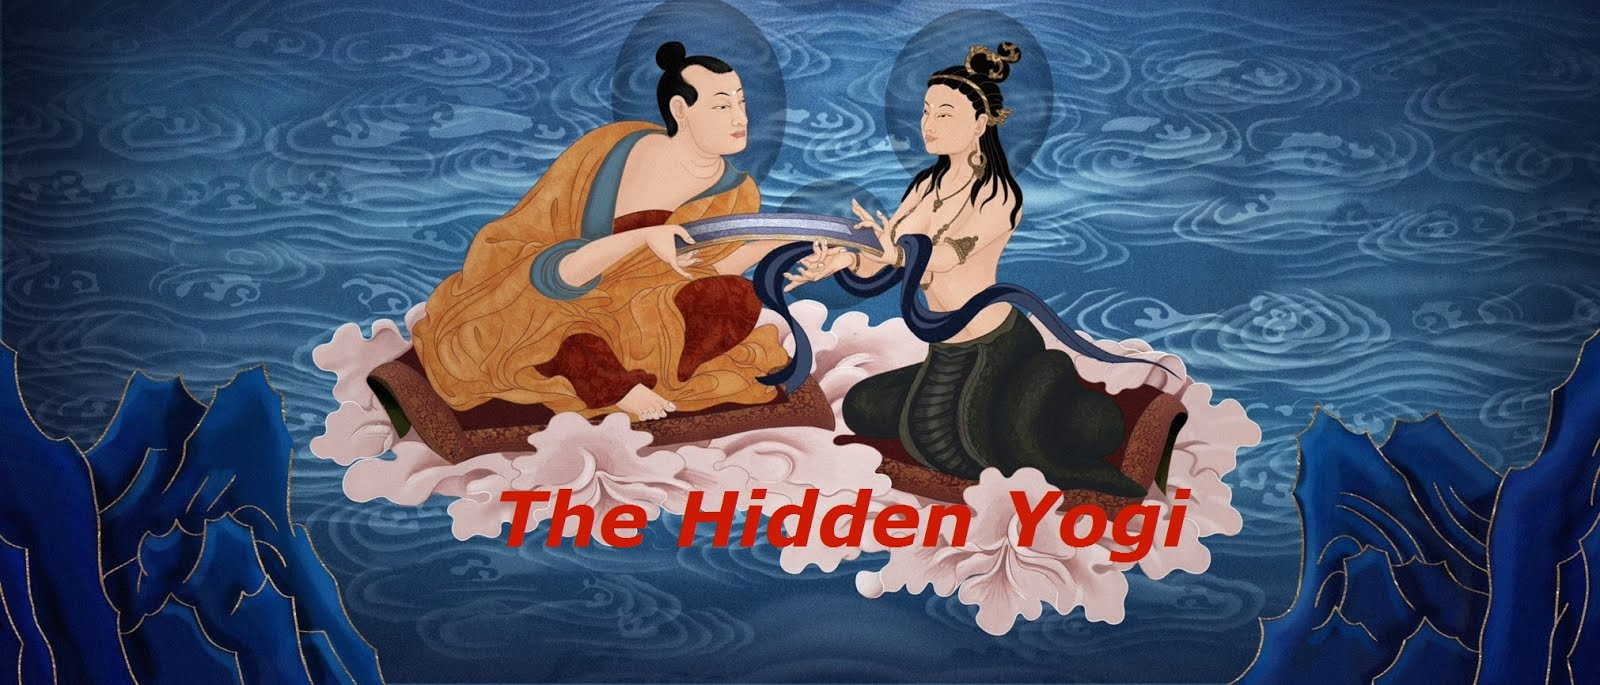 The Hidden Yogi